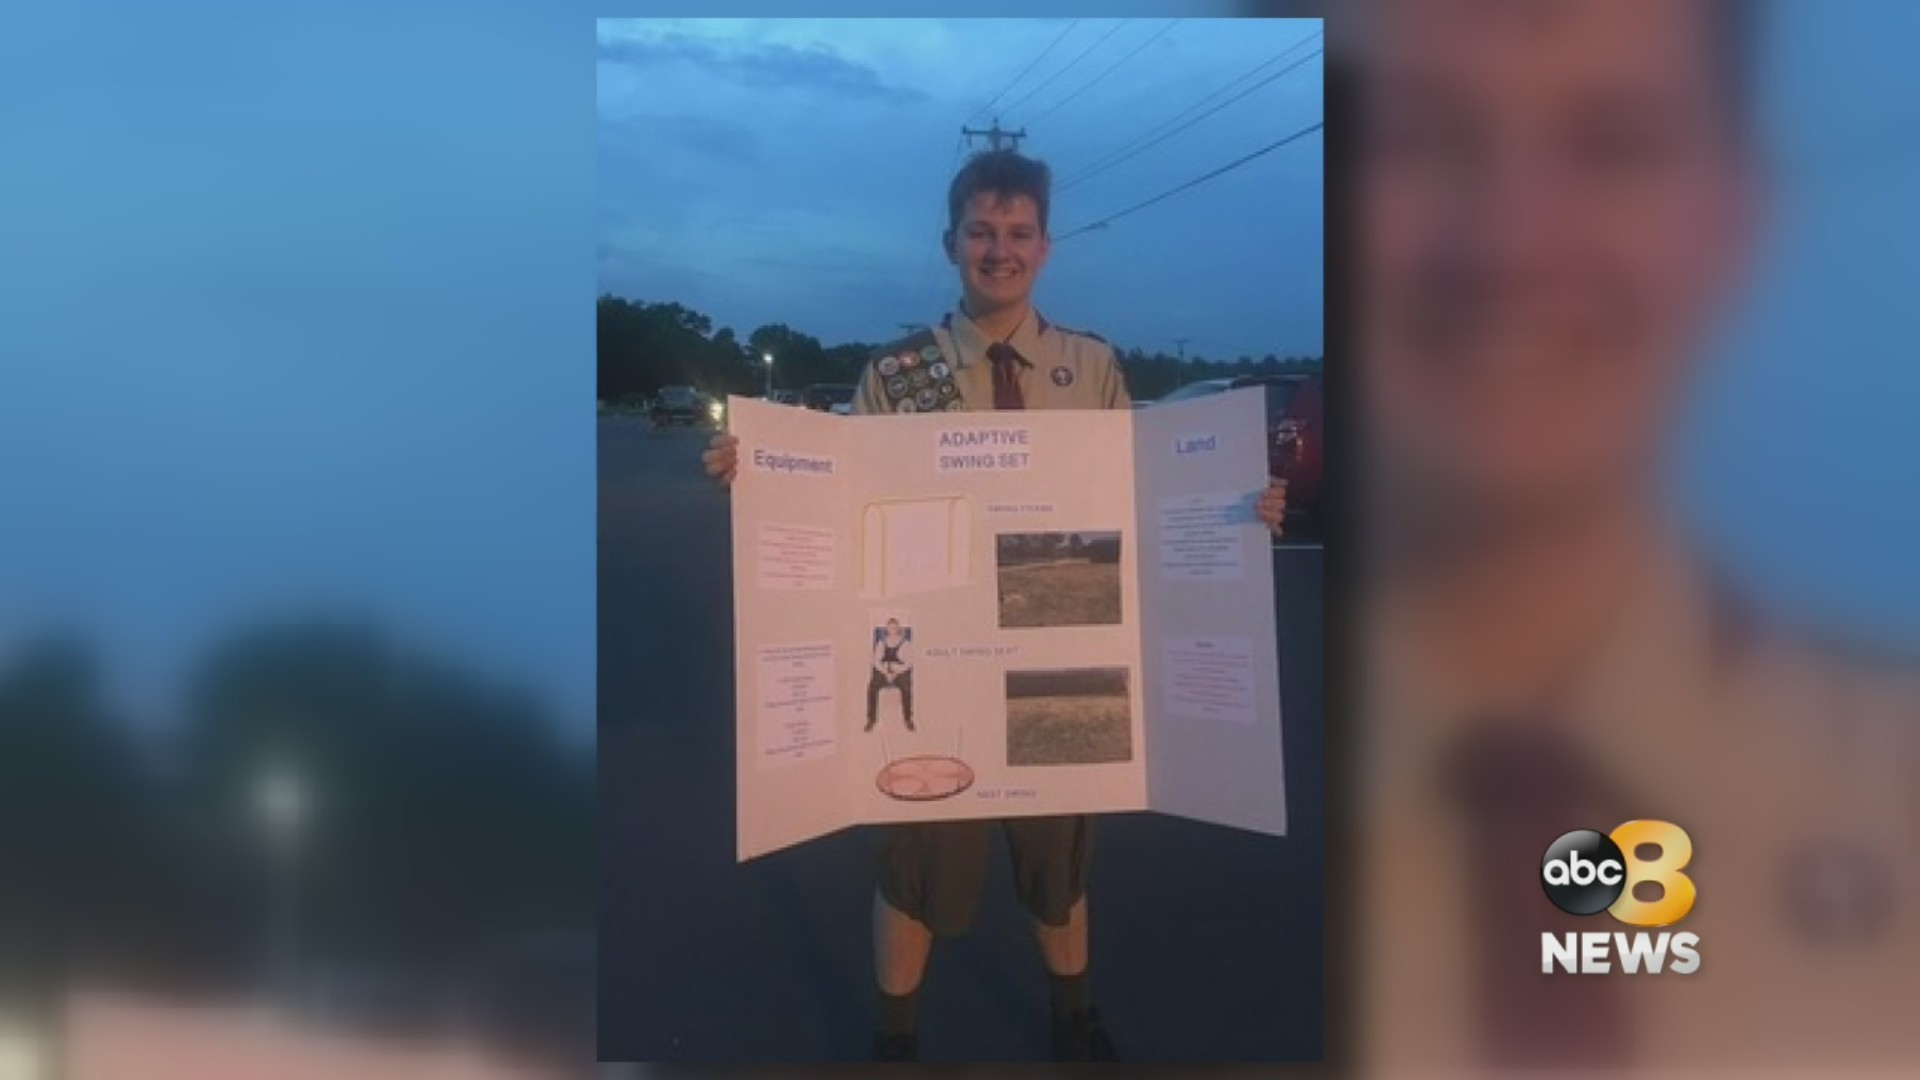 Local Boy Scout raising money to build adaptive swing set for special needs classmates